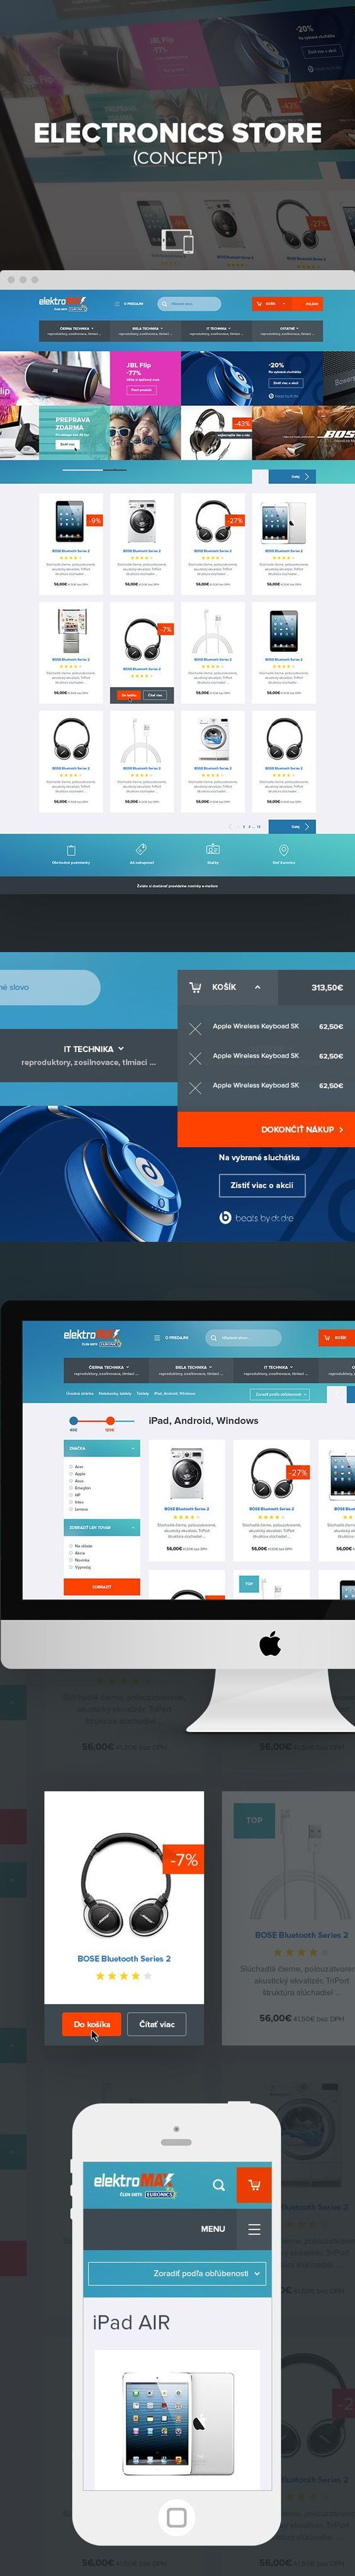 Concept of e commerce  electronic store: